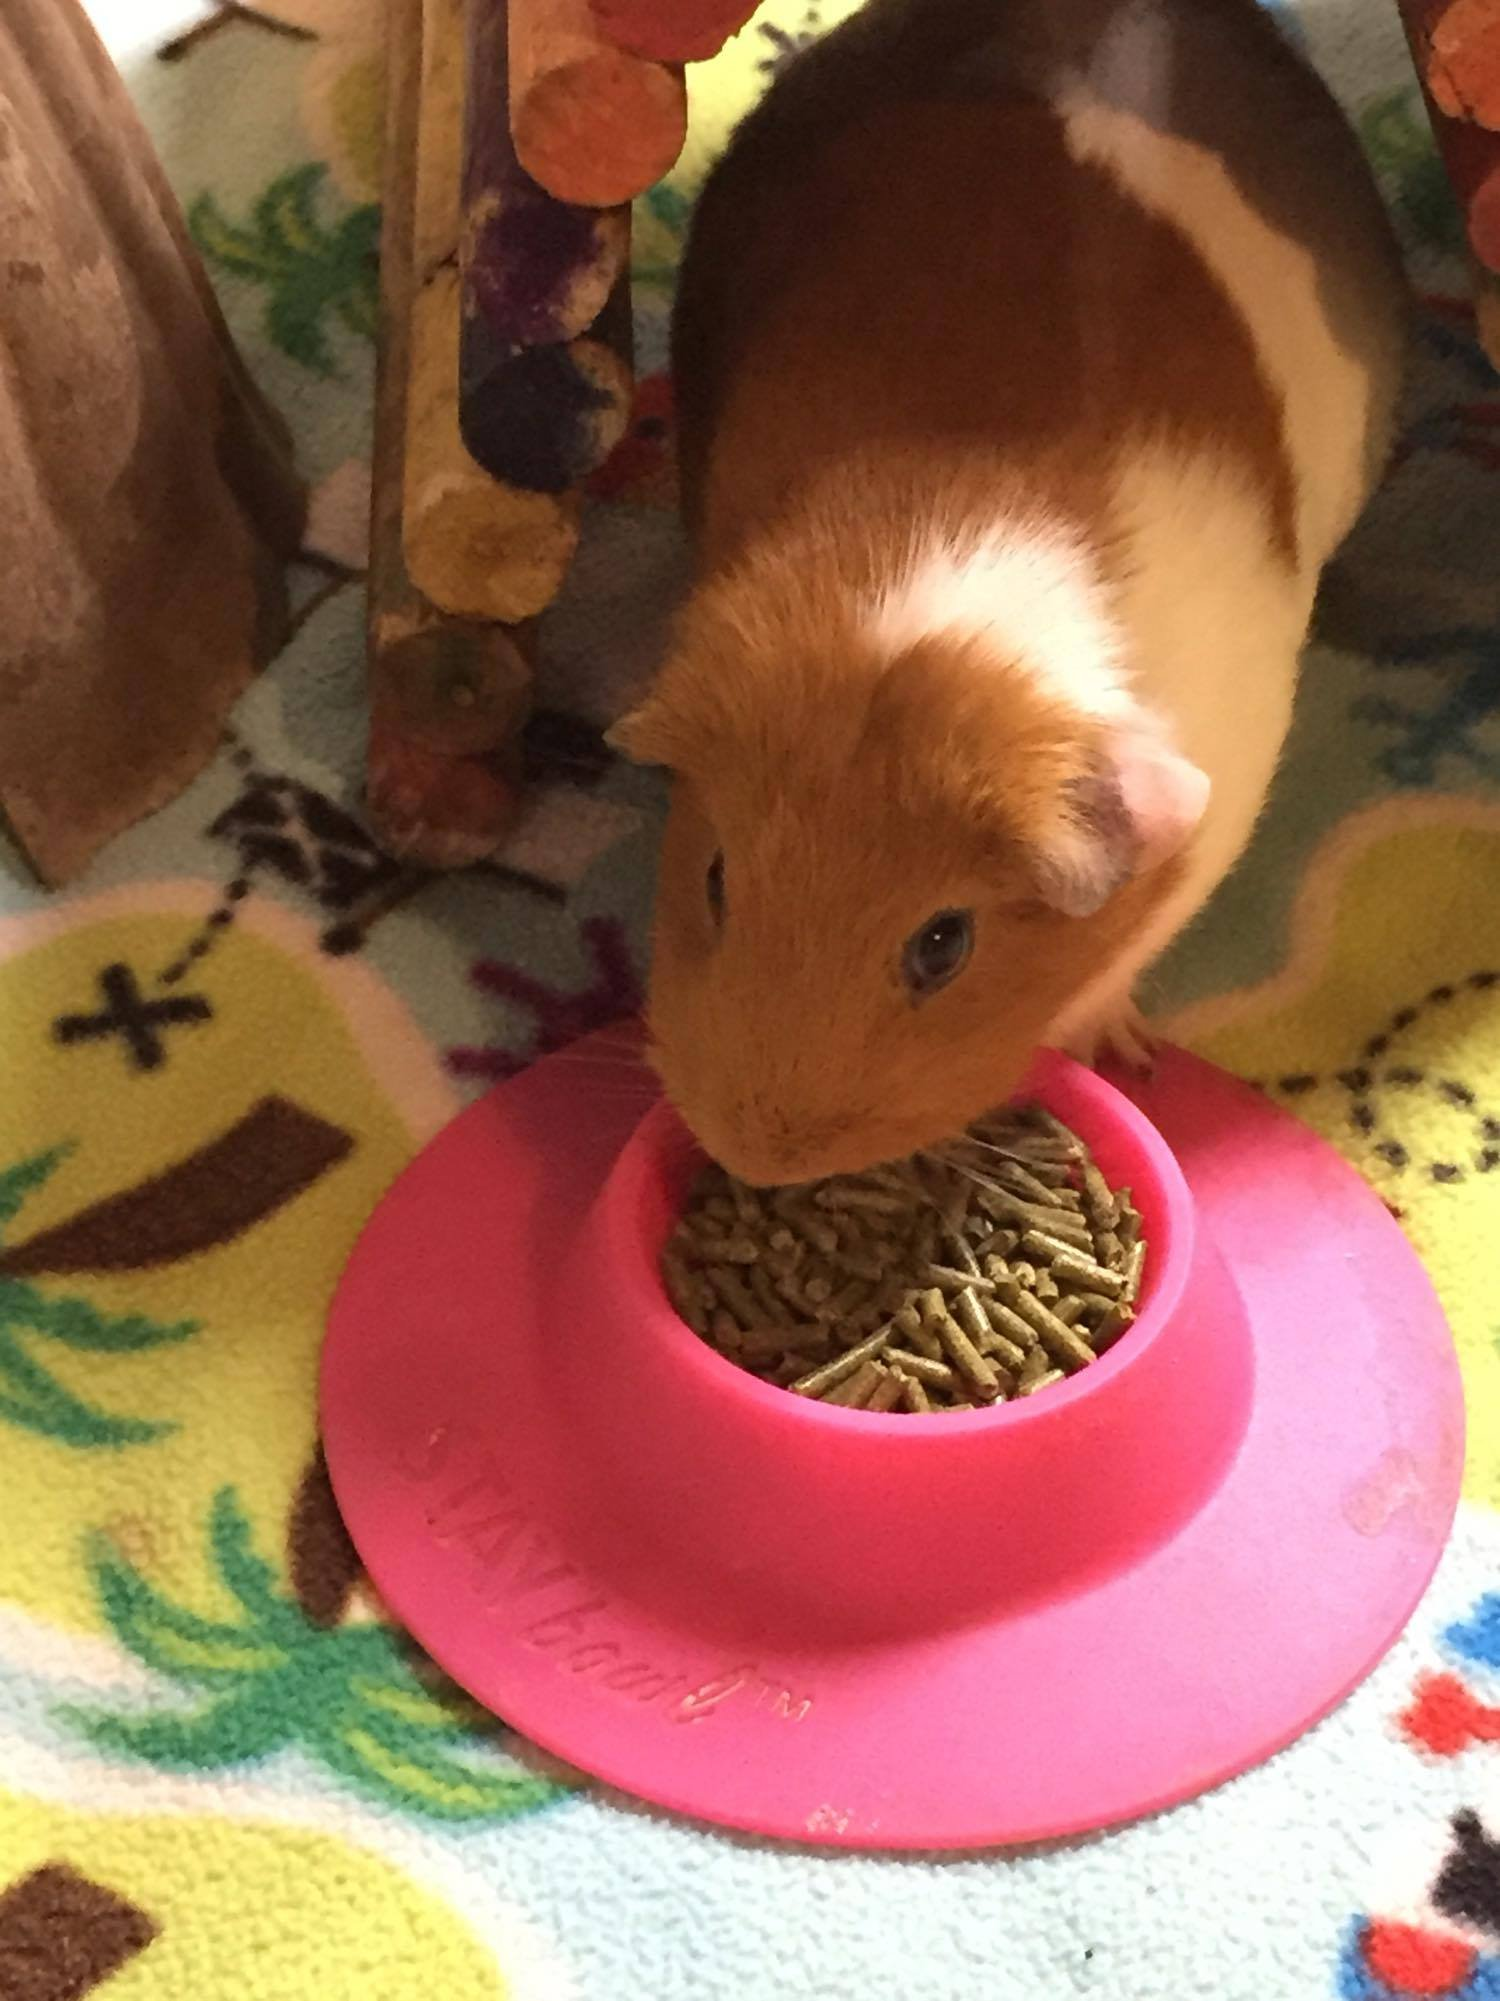 STAYbowl® Tip-Proof Ergonomic Pet Bowl for Guinea Pig and Other Small Pets, 1/4-Cup Small Size, Fuchsia (Pink)